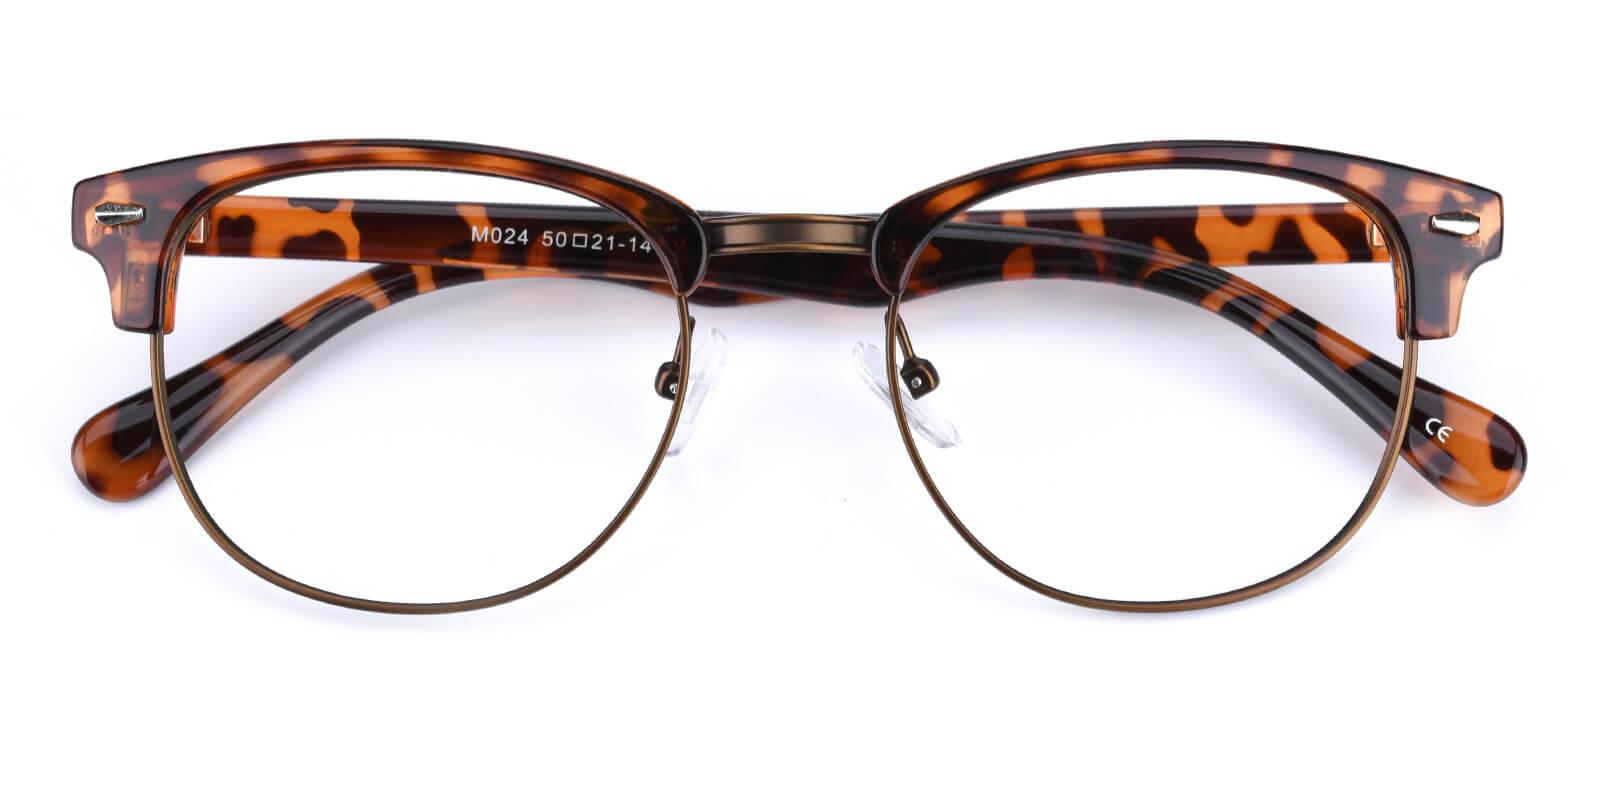 Ferrous-Leopard-Browline-Metal / Combination / Plastic-Eyeglasses-detail